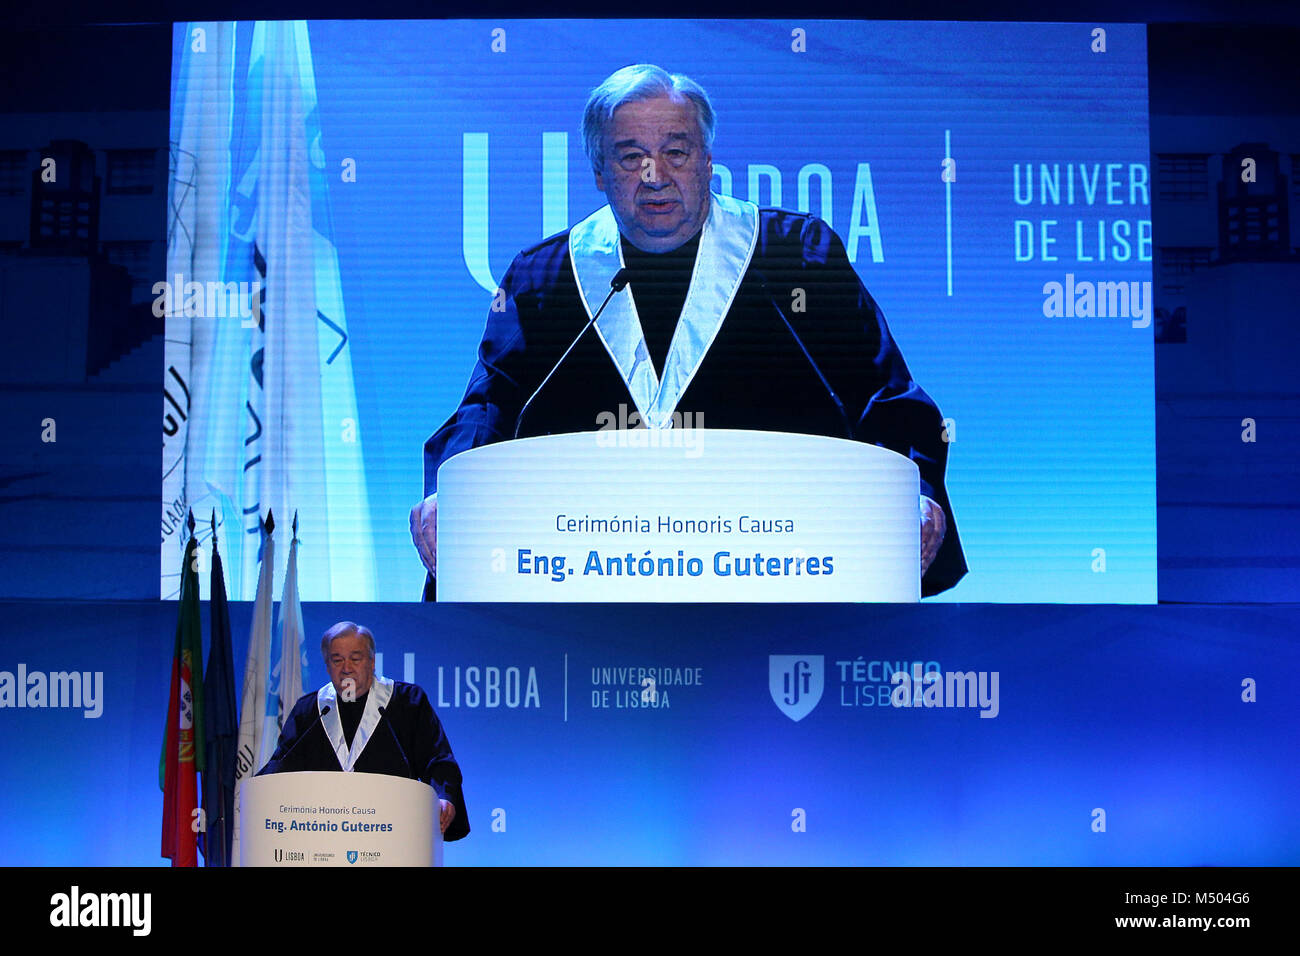 Lisbon, Portugal. 19th Feb, 2018. United Nations Secretary General Antonio Guterres delivers a speech during a ceremony - Stock Image